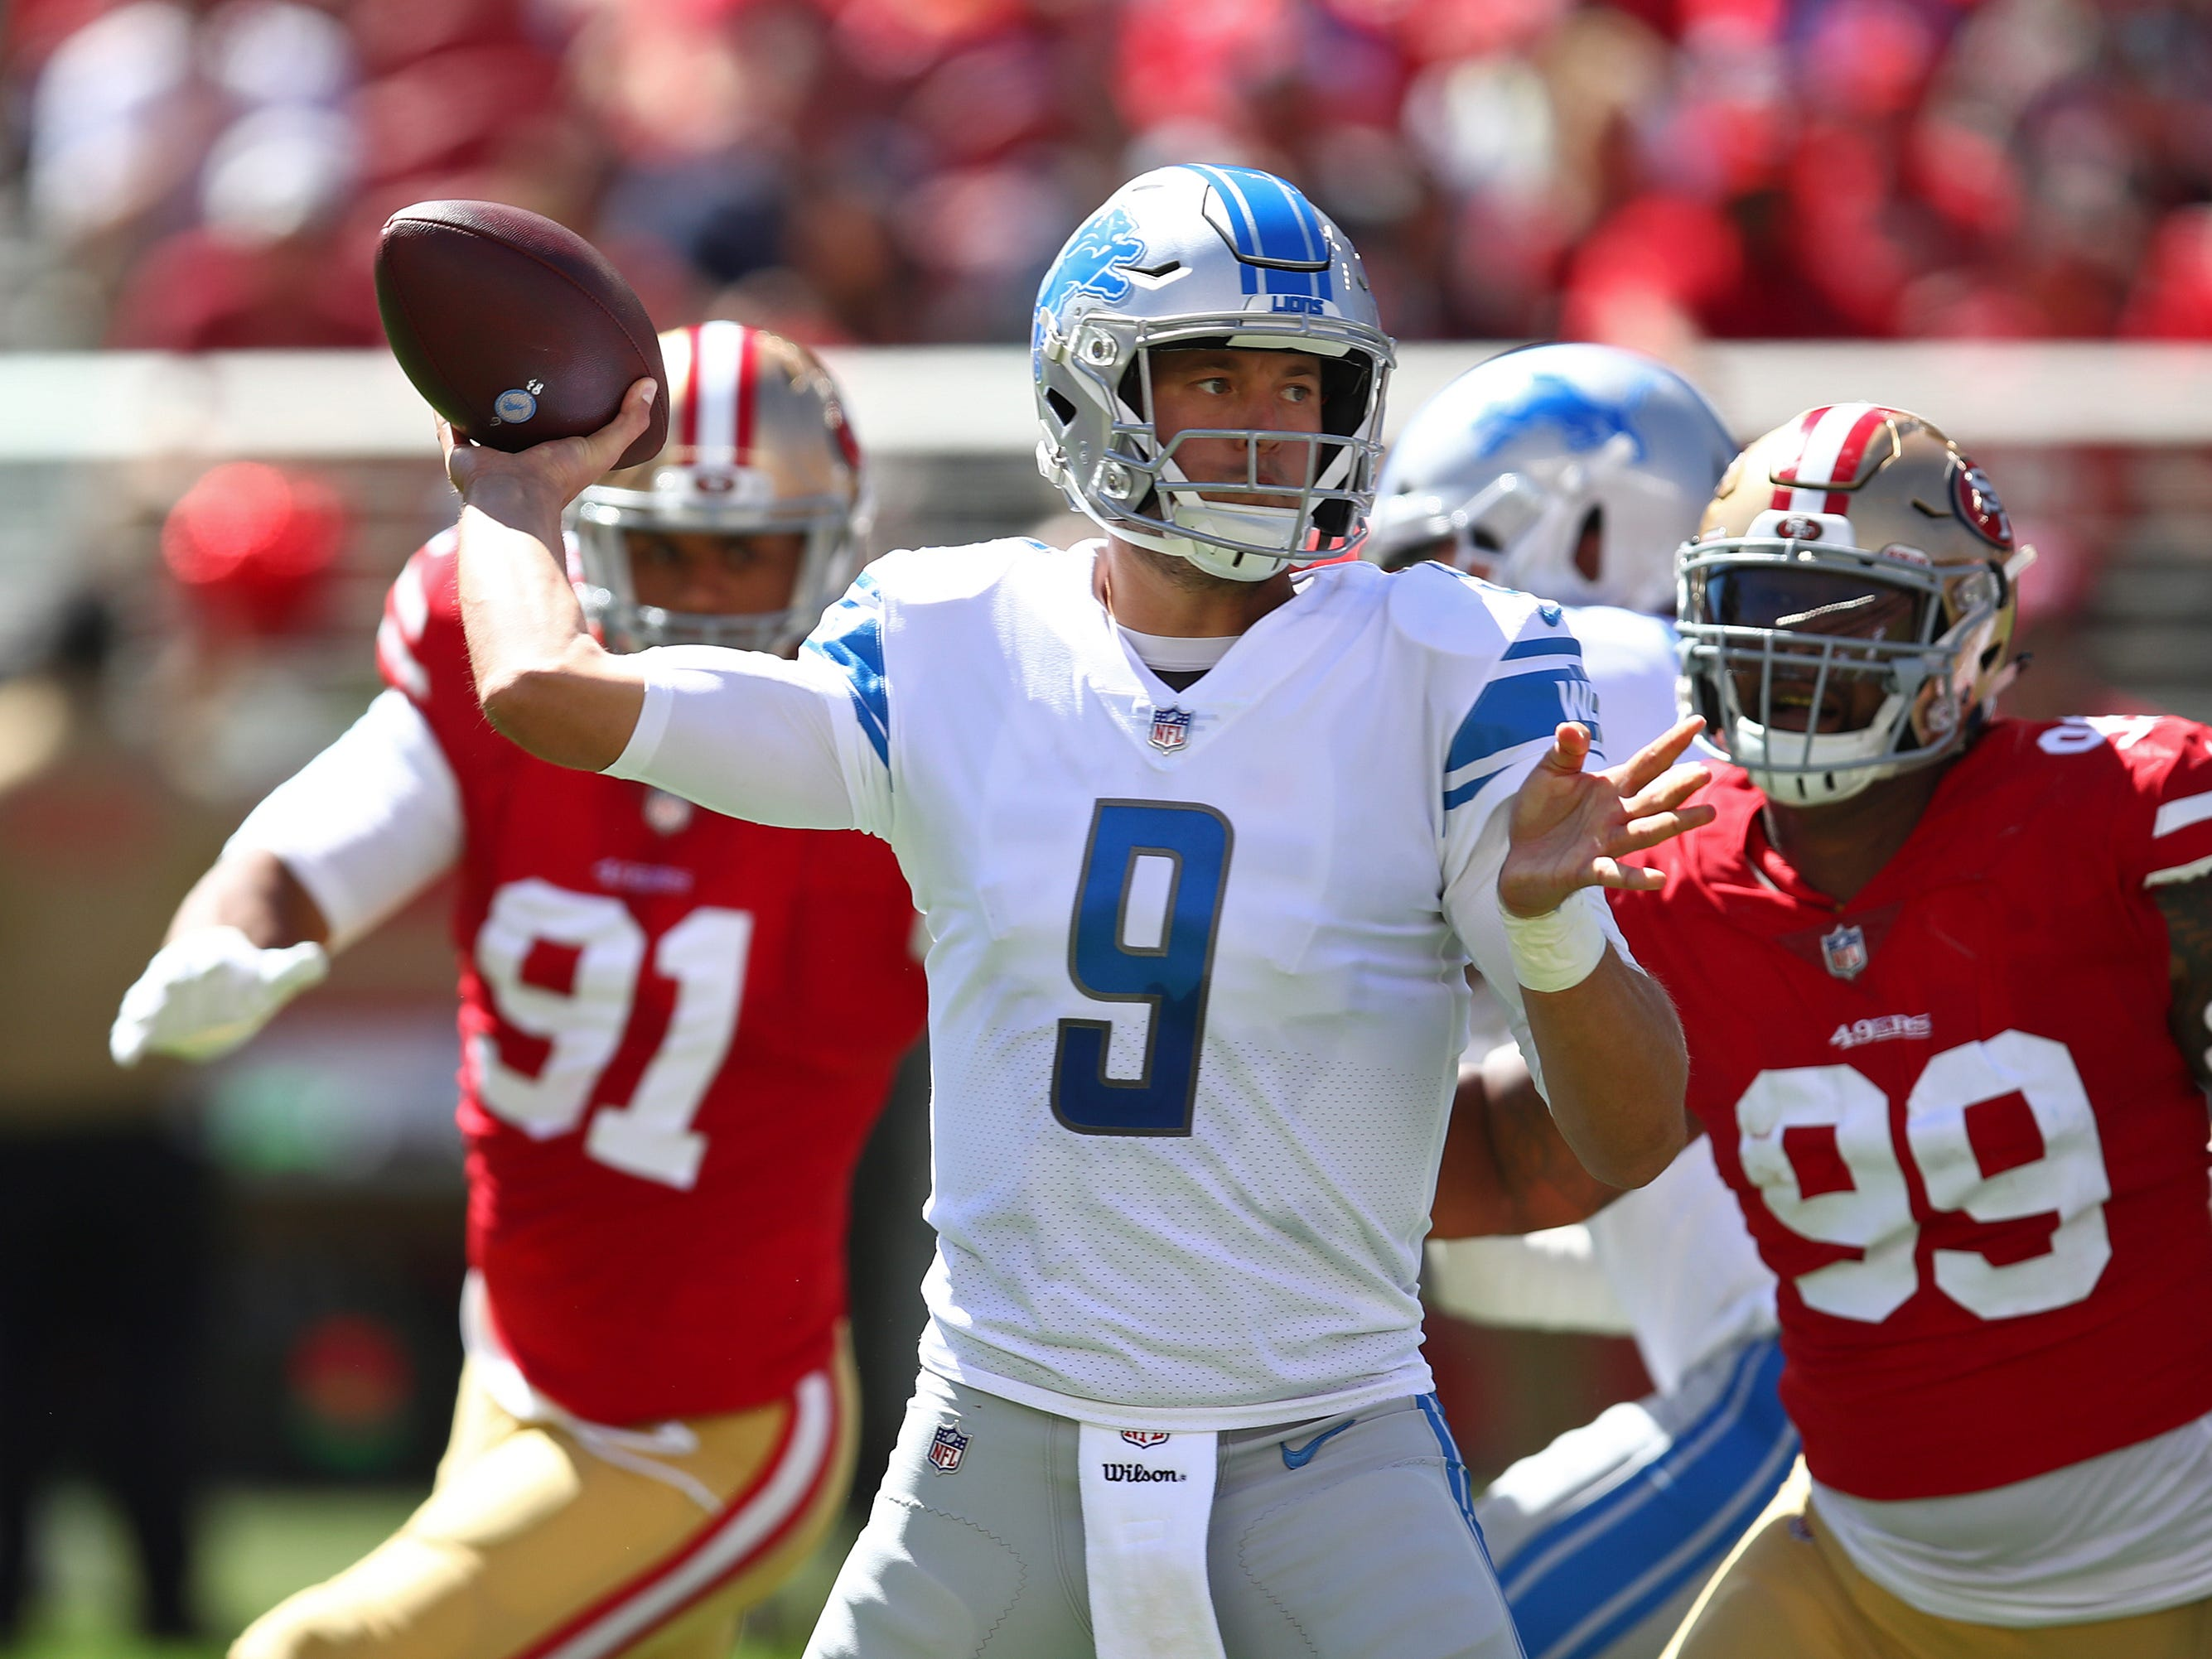 Lions quarterback Matthew Stafford looks to throw as 49ers defensive end DeForest Buckner (99) applies pressure during the first half Sunday, Sept. 16, 2018, in Santa Clara, Calif.